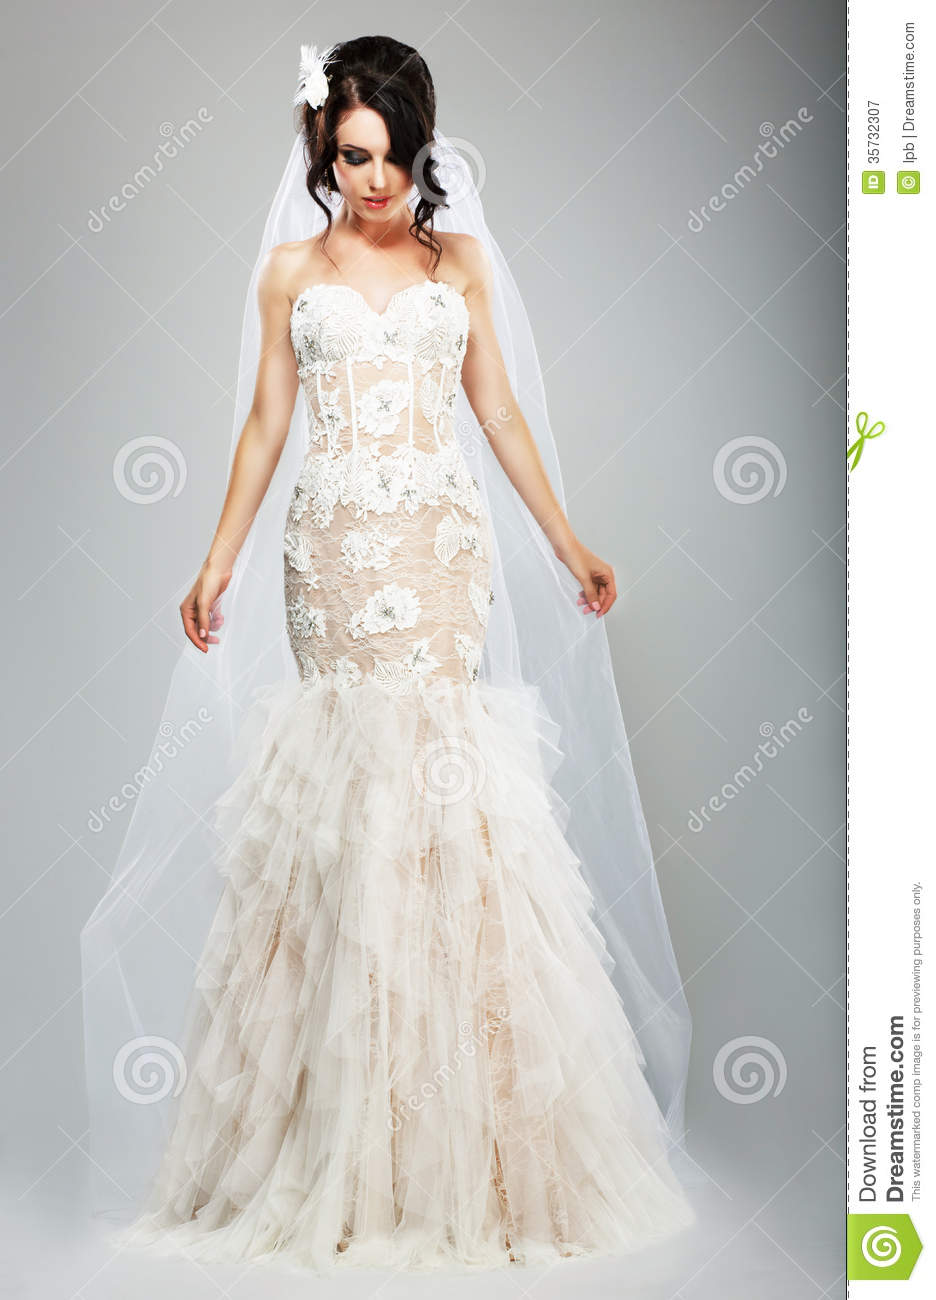 Image Result For Bride Dresses With Long Sleeves